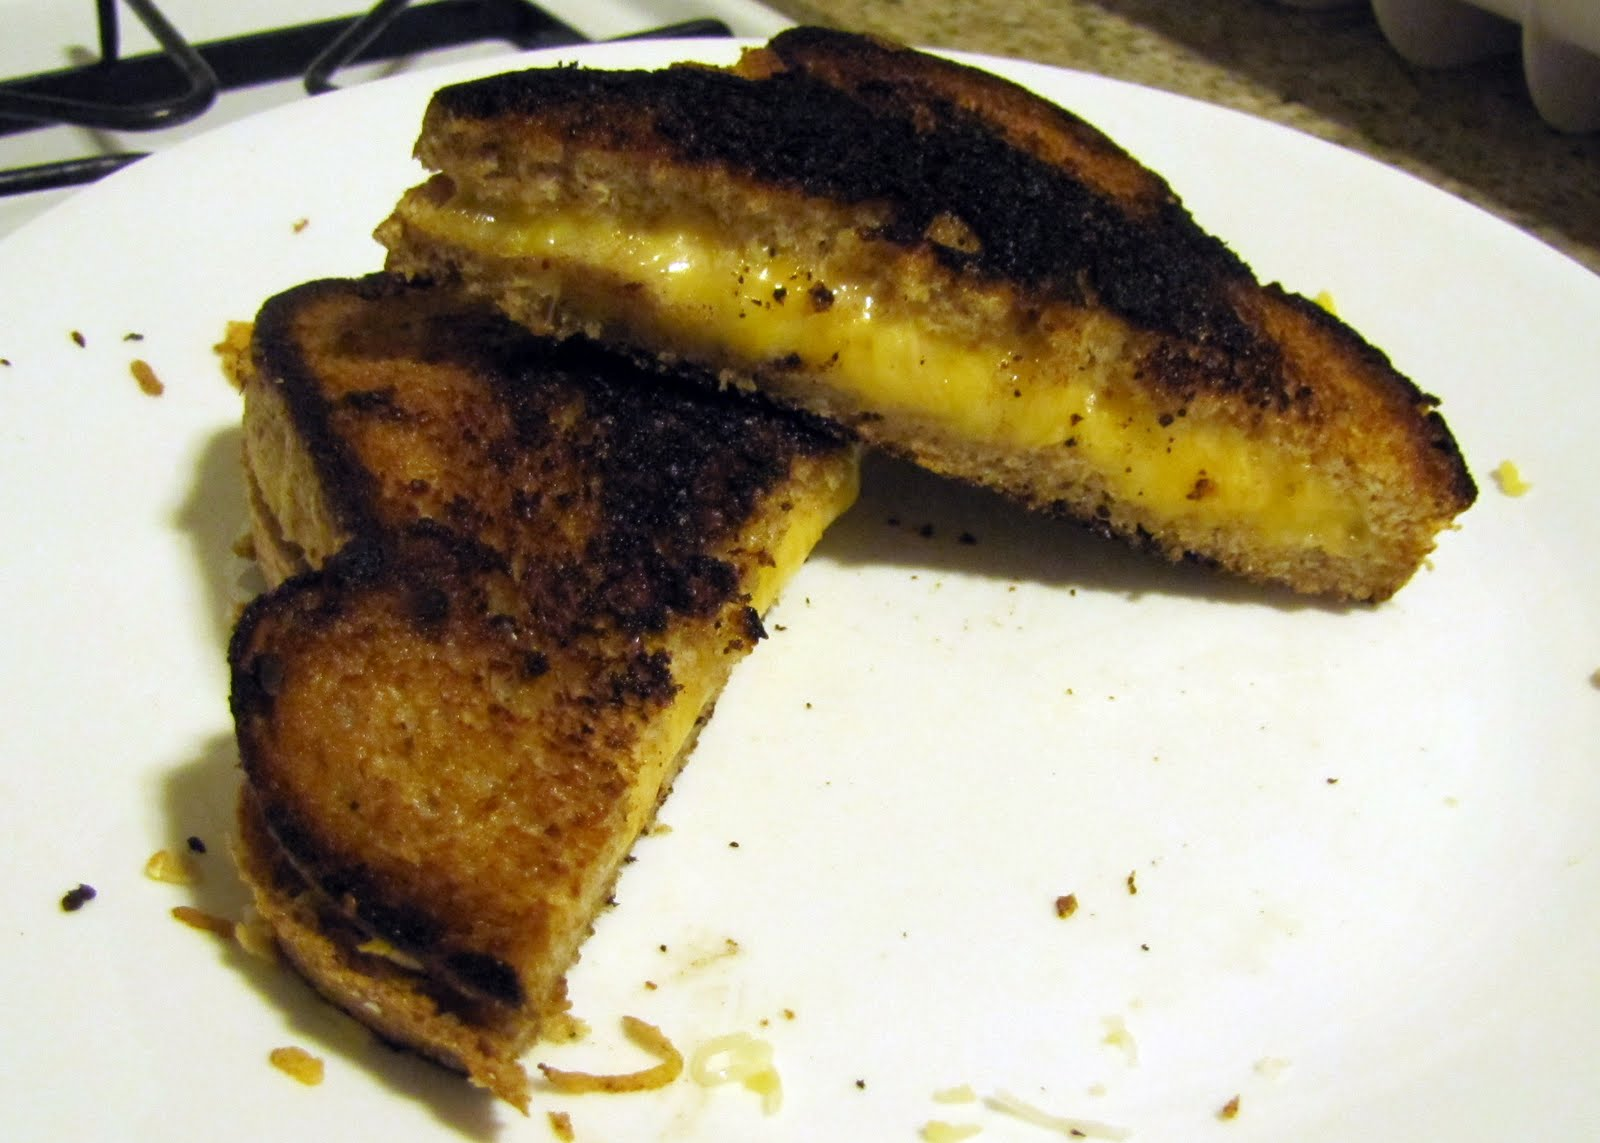 ... Food in Here: Grilled Shredded Mexican-Blend Cheese Sandwich, Burnt